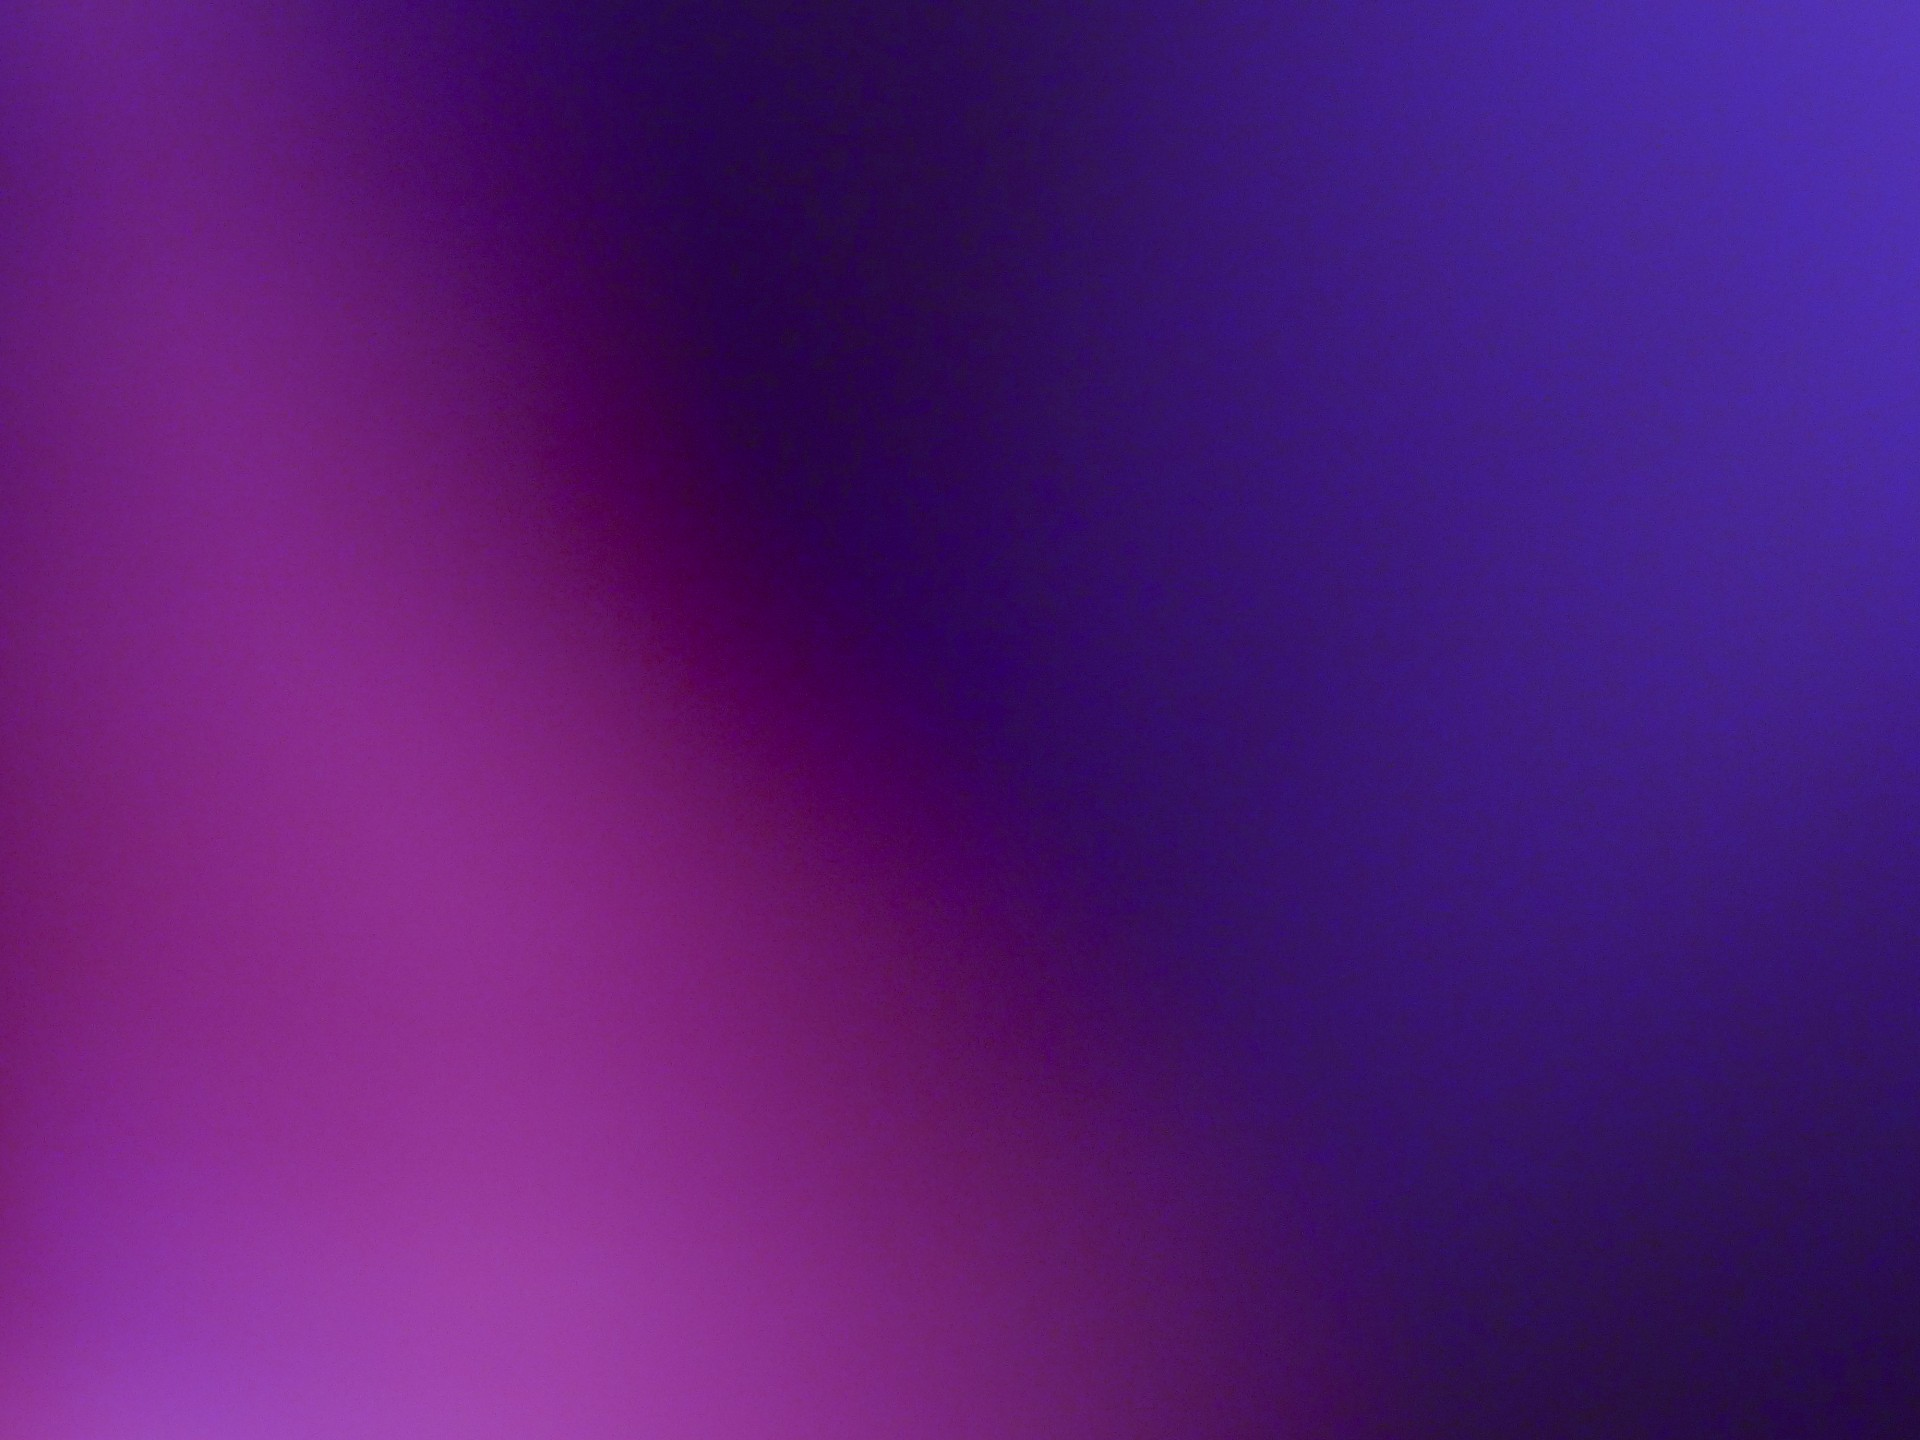 Cute Wallpapers Ipad App Pretty Pink And Purple Background 183 ①